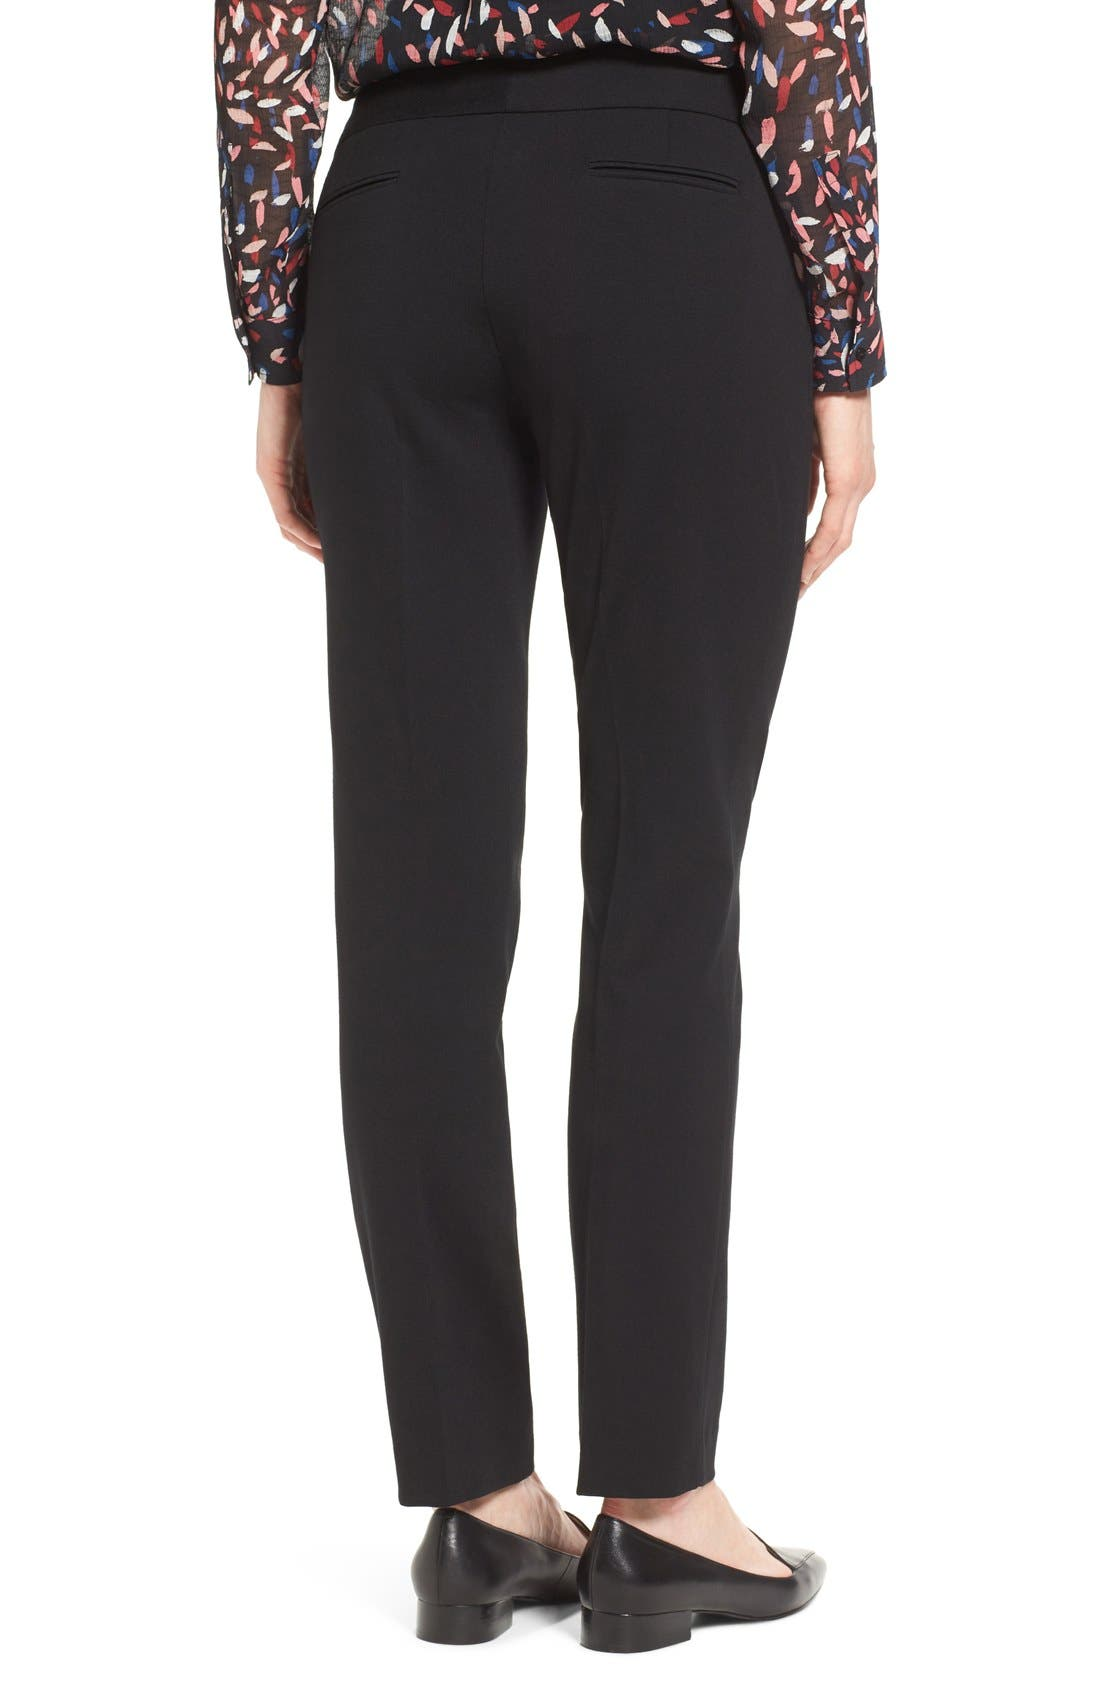 VINCE CAMUTO, Ponte Ankle Pants, Alternate thumbnail 2, color, BLACK